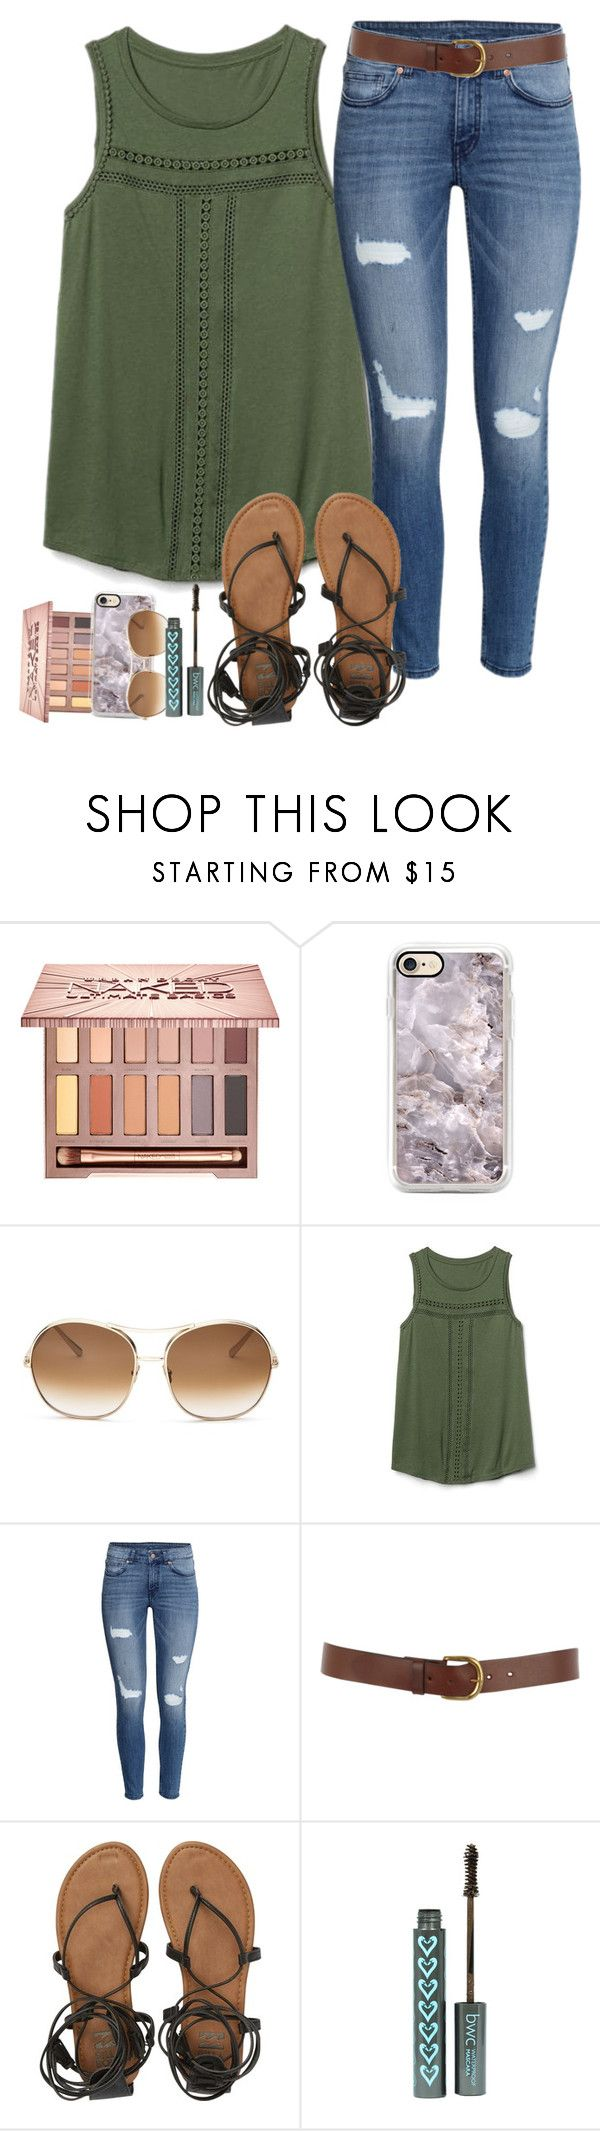 """There's no way I can make it without you"" by labures on Polyvore featuring Urban Decay, Chloé, Gap, H&M, Warehouse and Billabong"